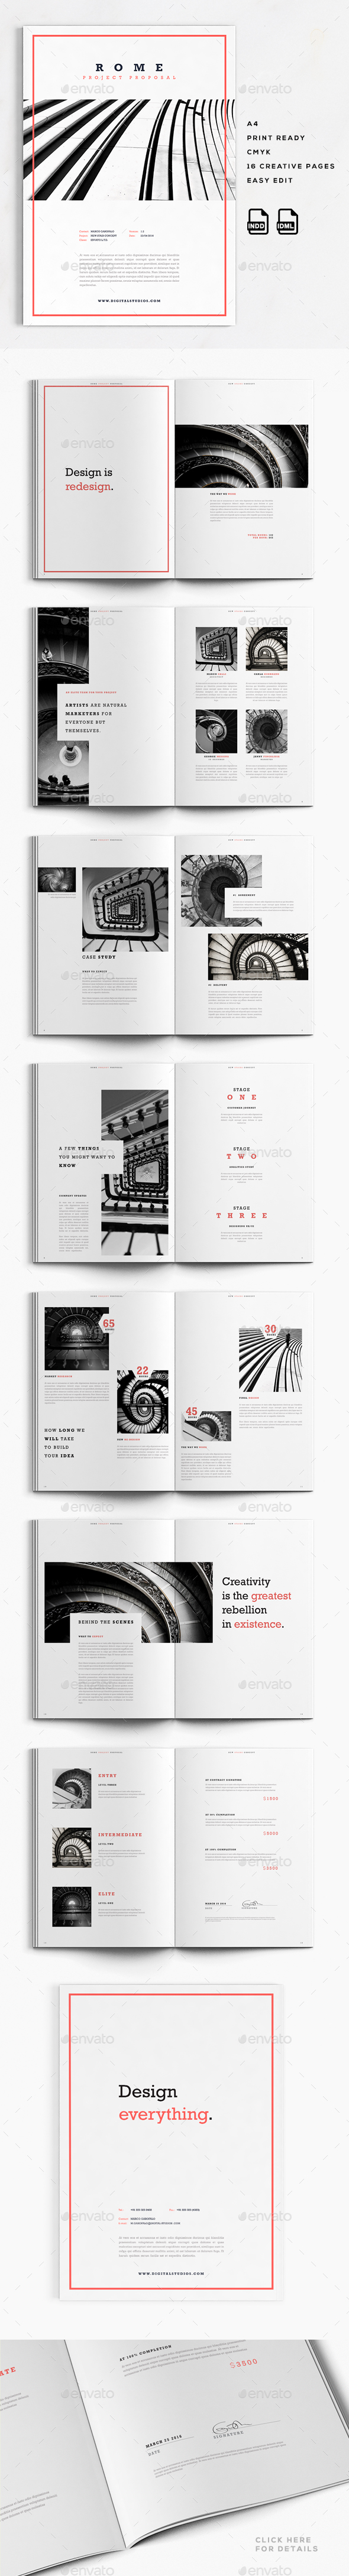 Rome | A4 Creative Business Proposal - Proposals & Invoices Stationery